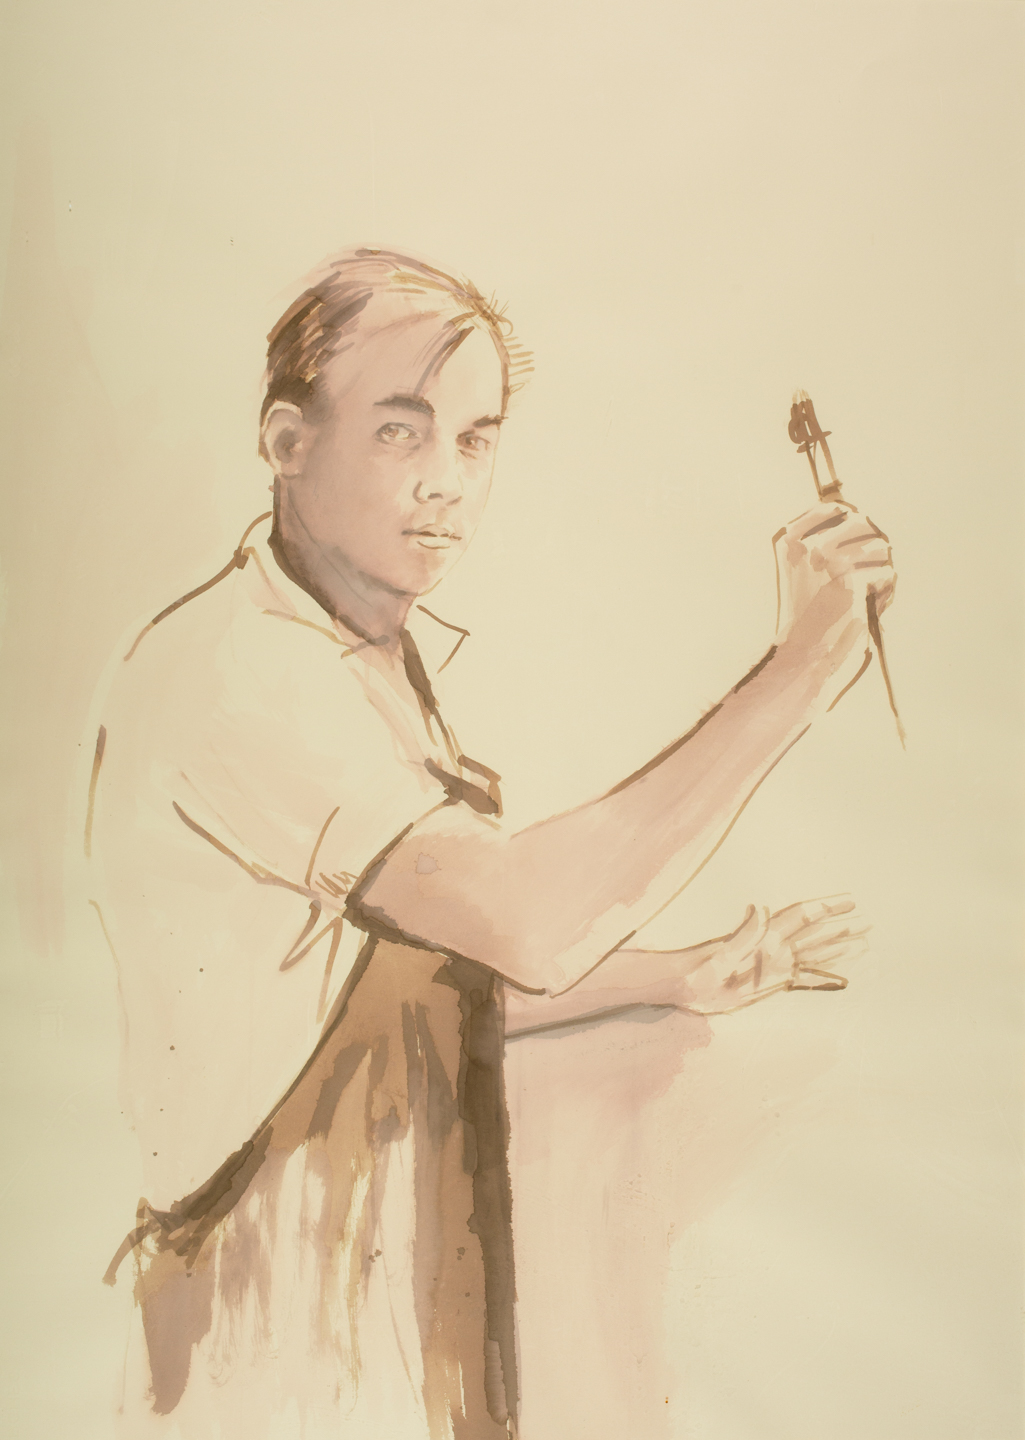 self-portrait, painting by Tim Trapolin